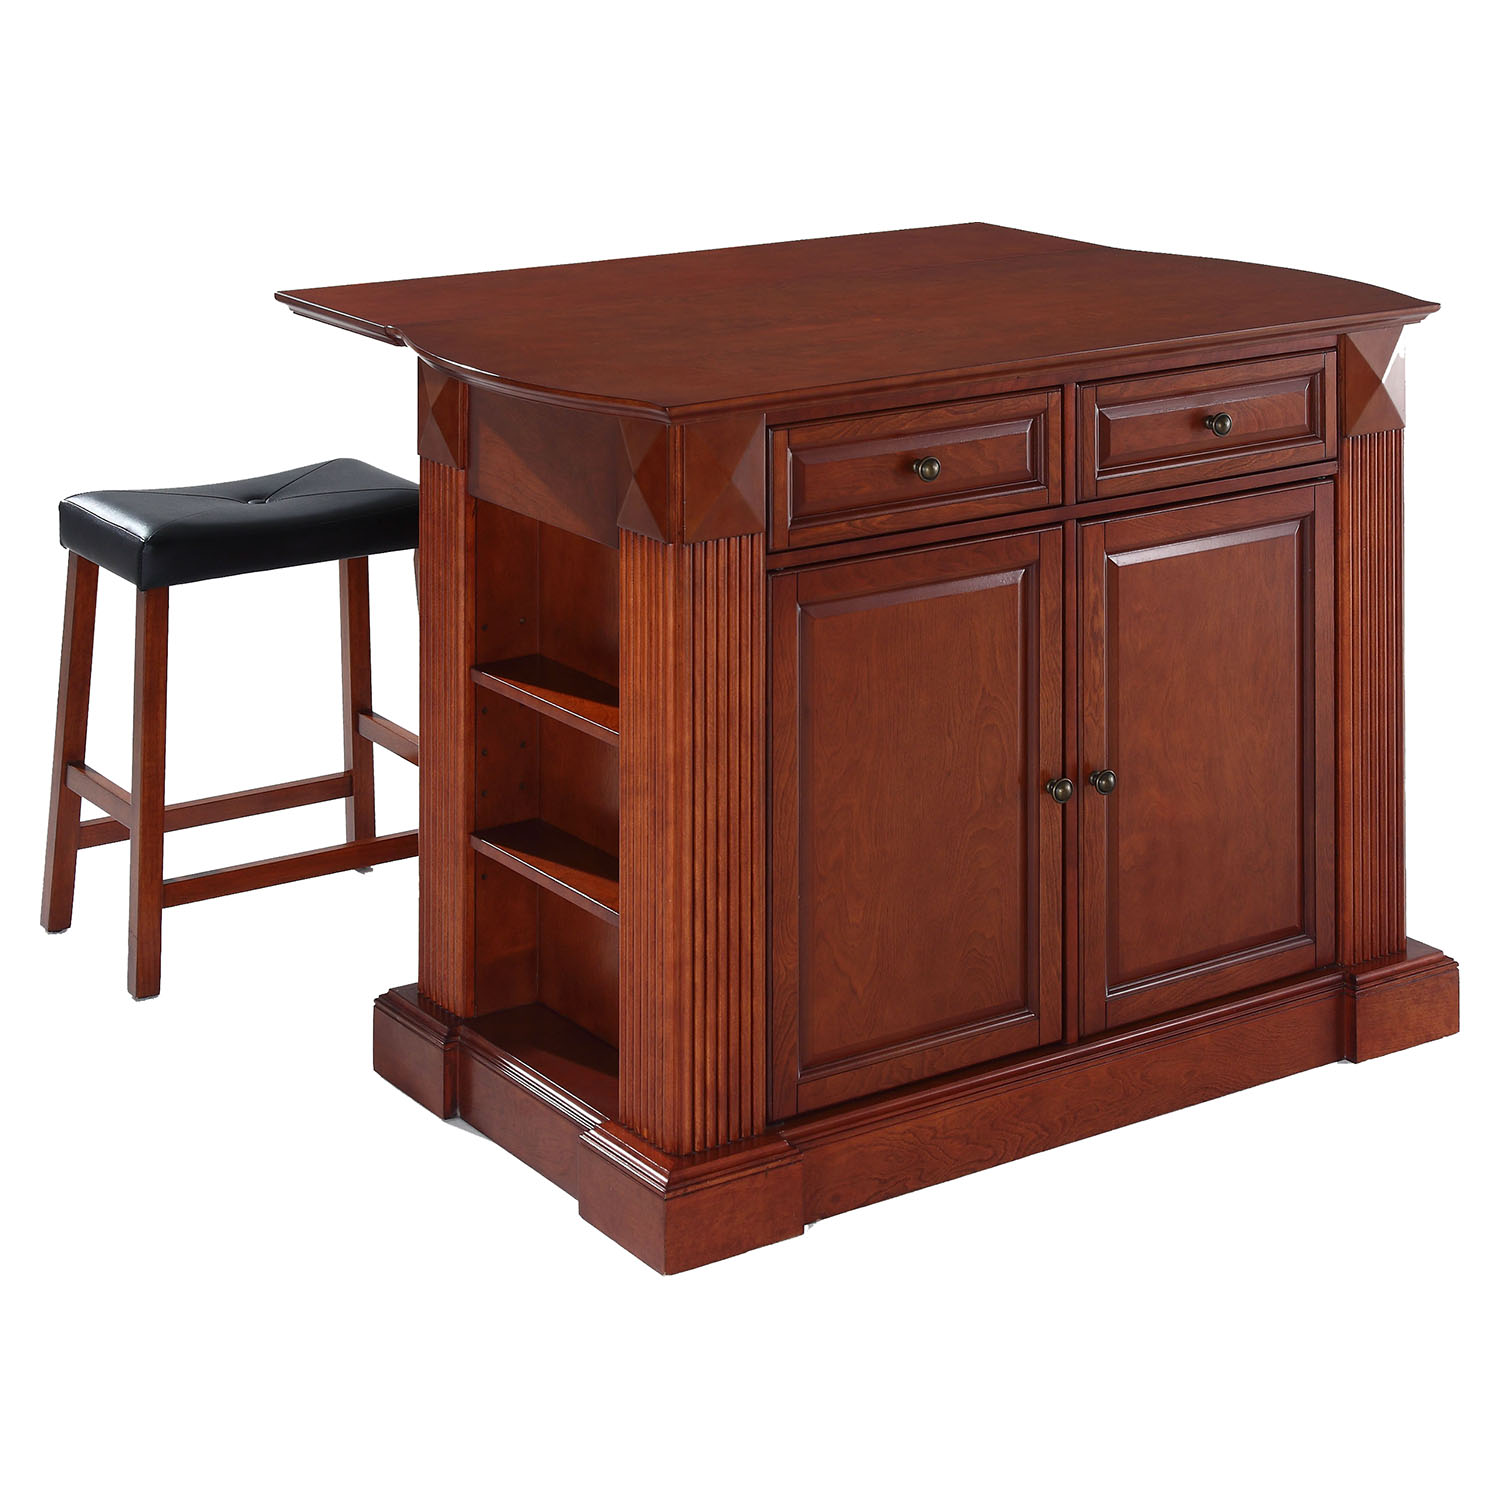 "Drop Leaf Breakfast Bar Top Kitchen Island in Cherry with 24"" Cherry Stools - CROS-KF300074CH"